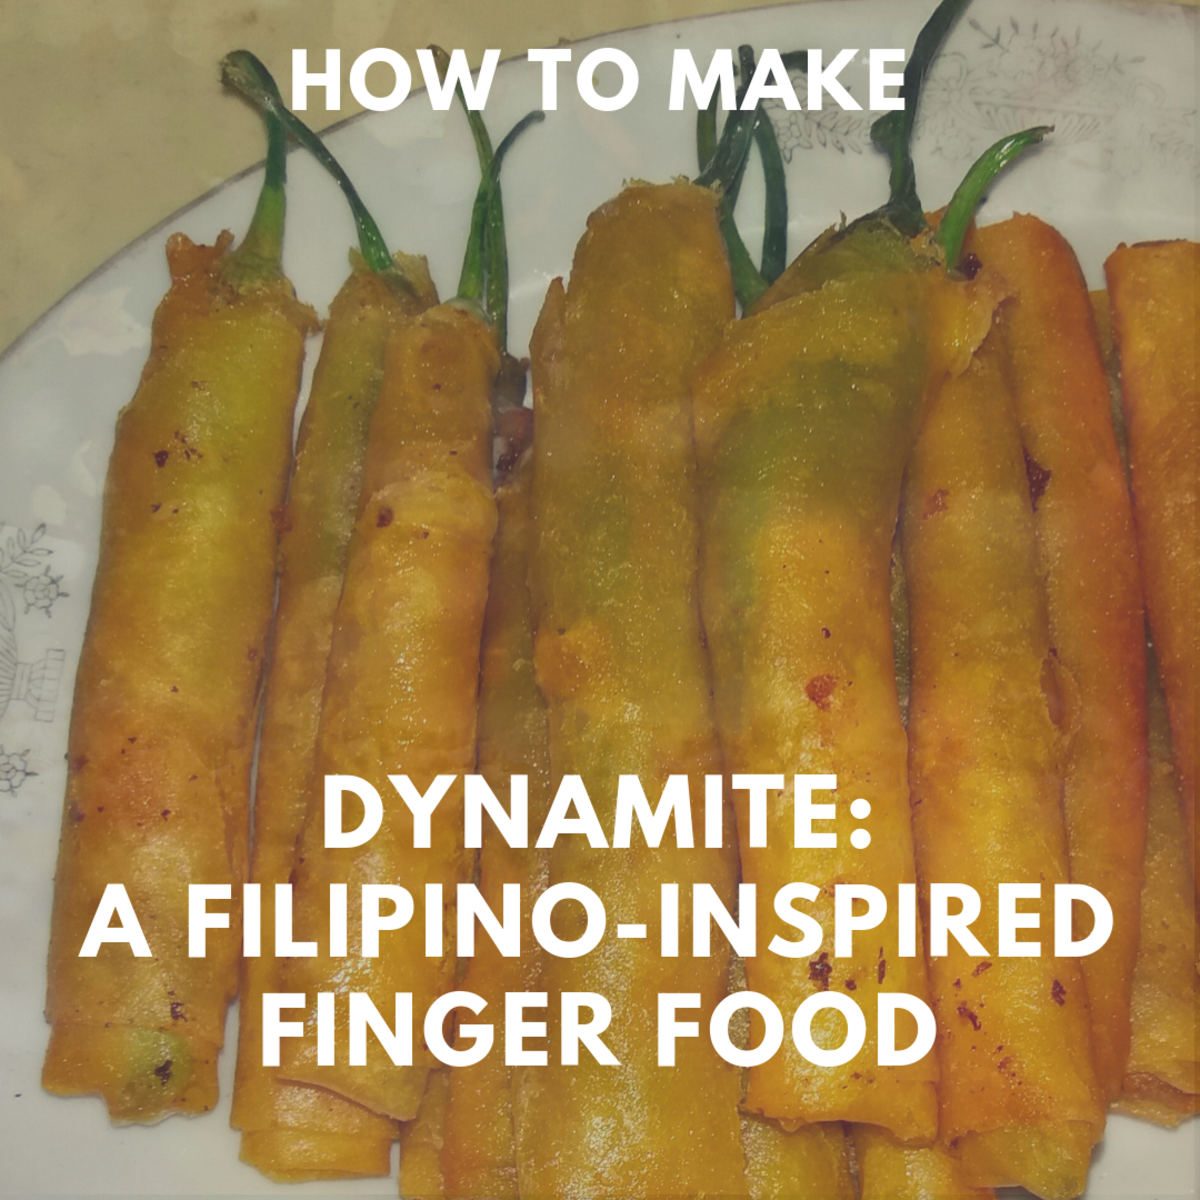 how to make dynamite: a Filipino-inspired finger food